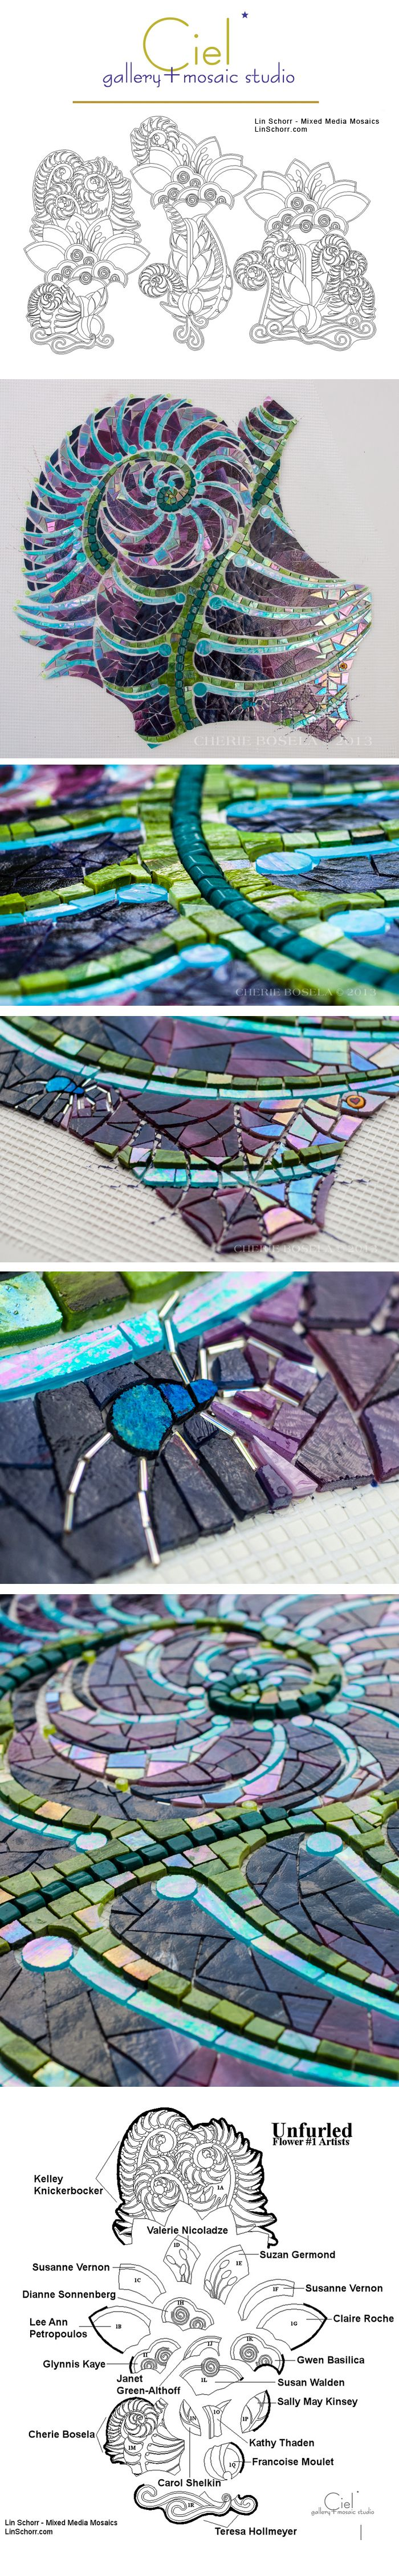 best glass images on pinterest mosaic projects mosaic art and